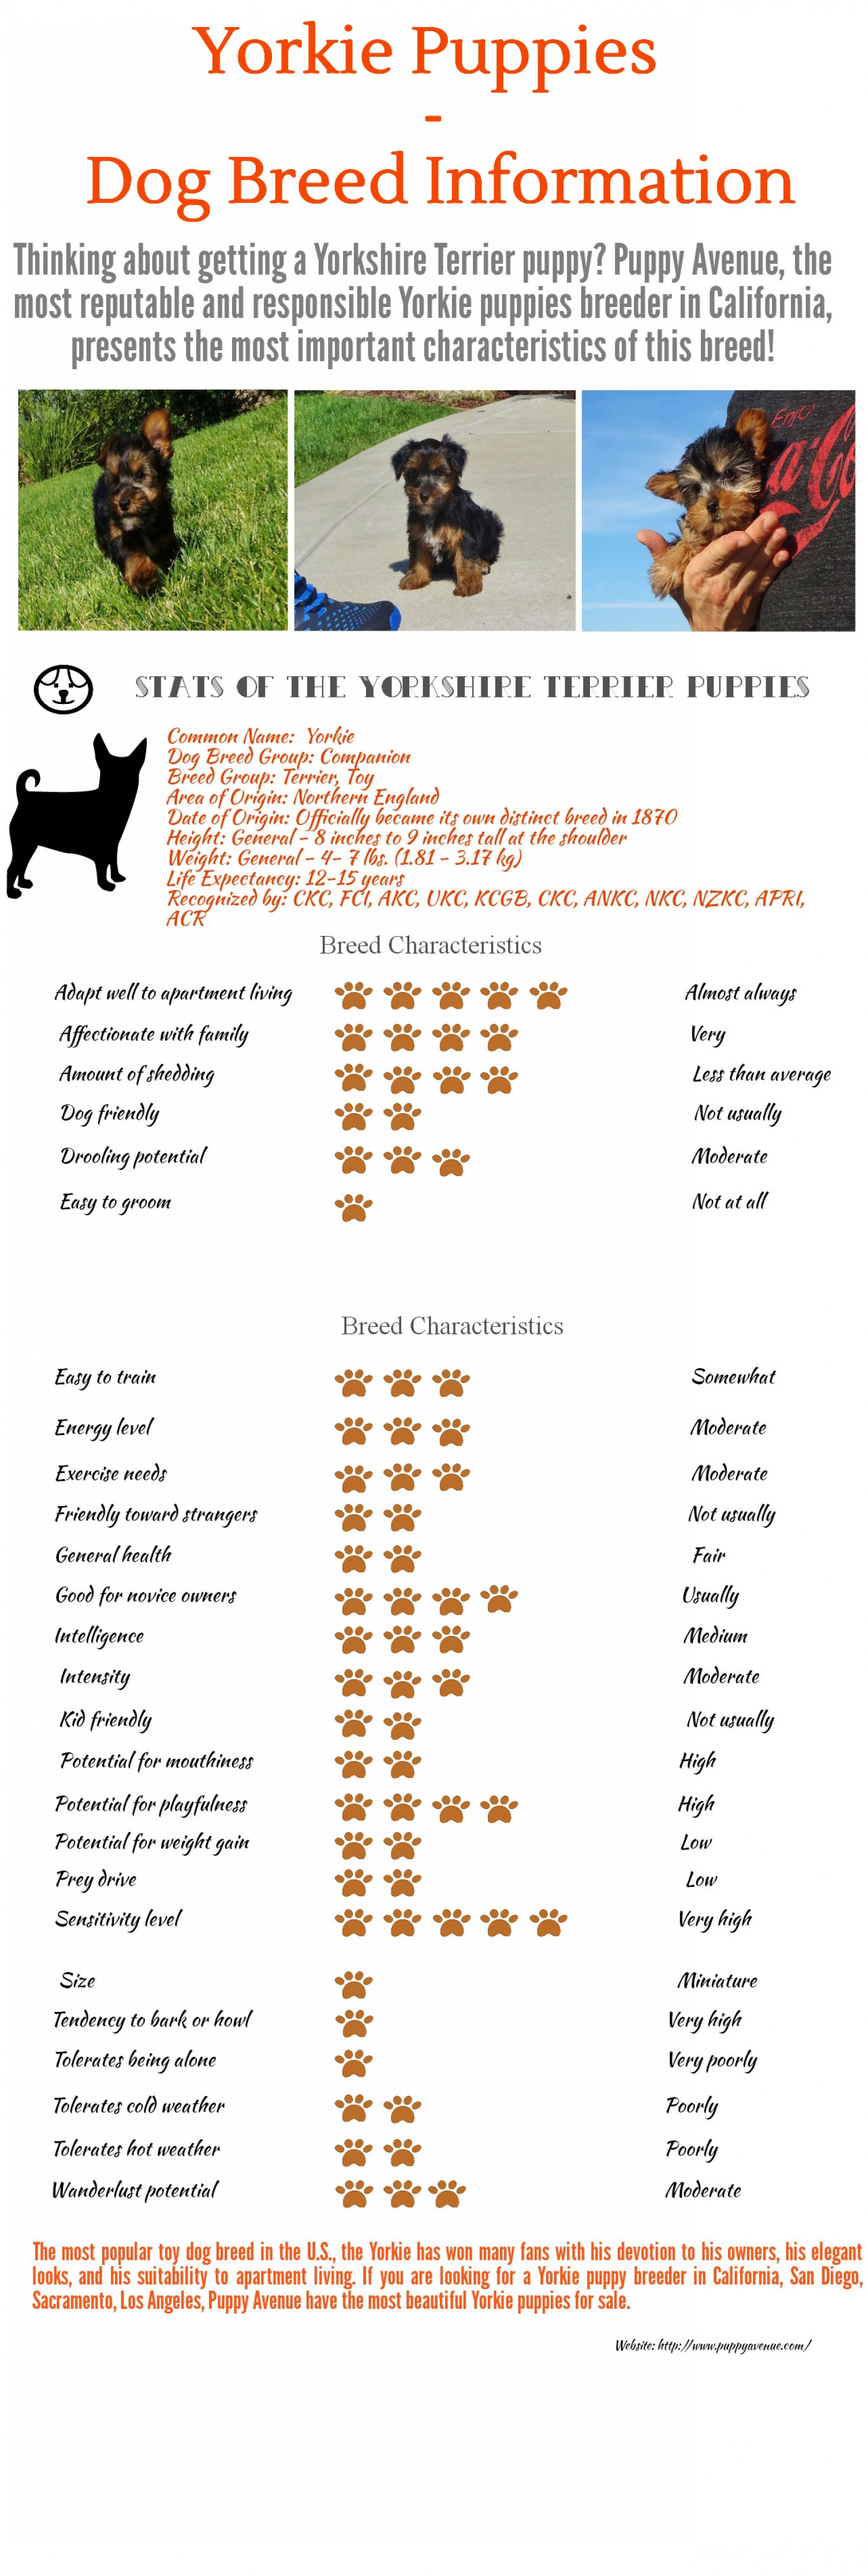 Yorkie Puppies  -  Dog Breed Information and Characteristics Infographic